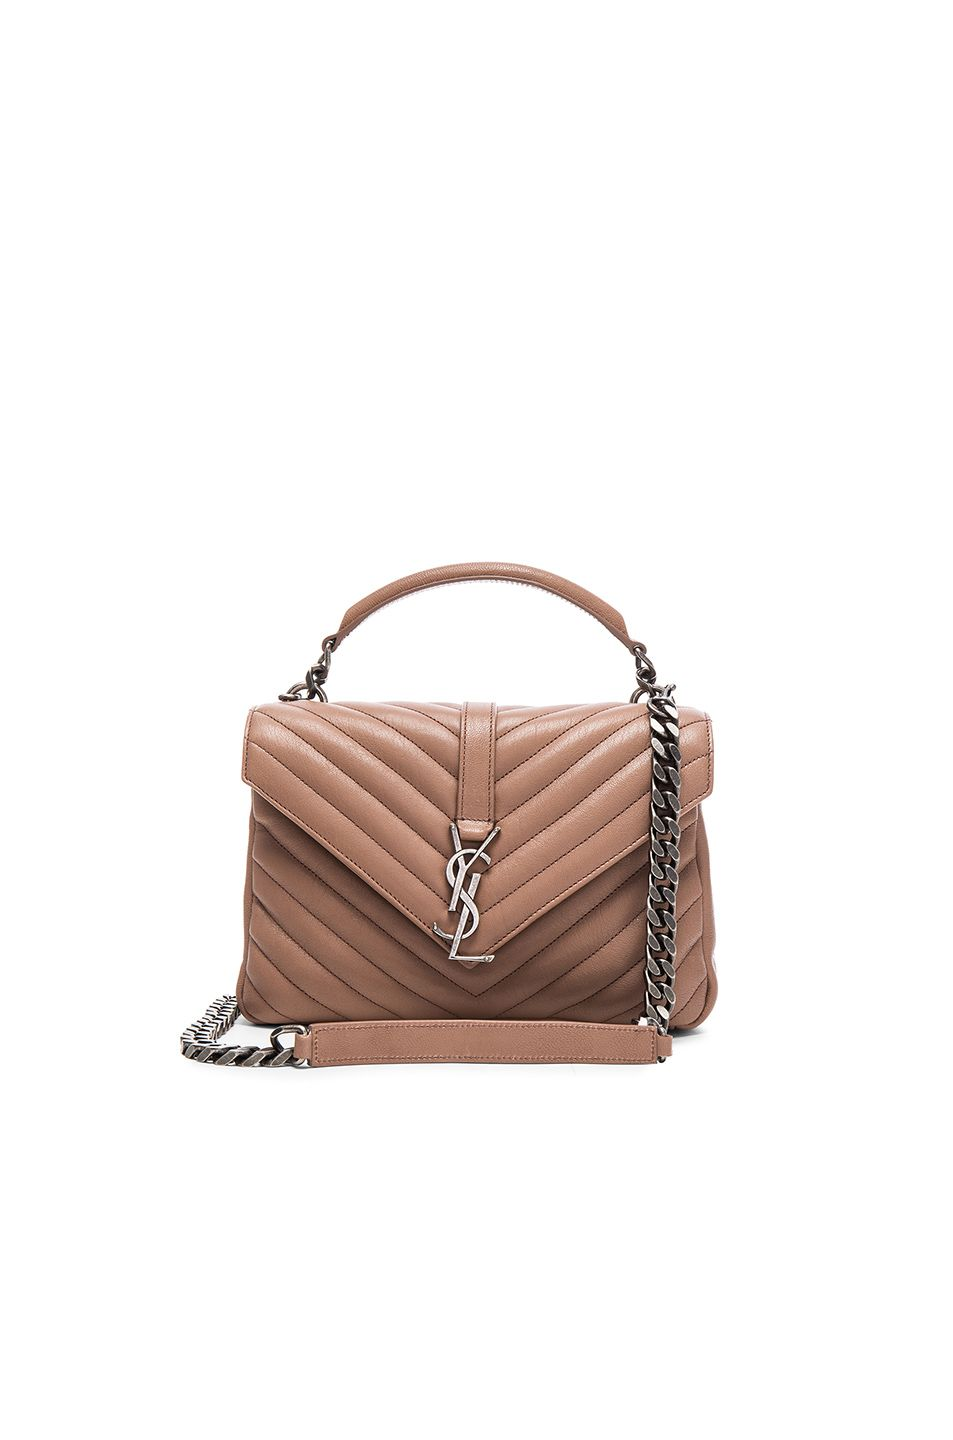 Image 1 of Saint Laurent Medium Monogram College Bag in Fard  29df6d03abd84